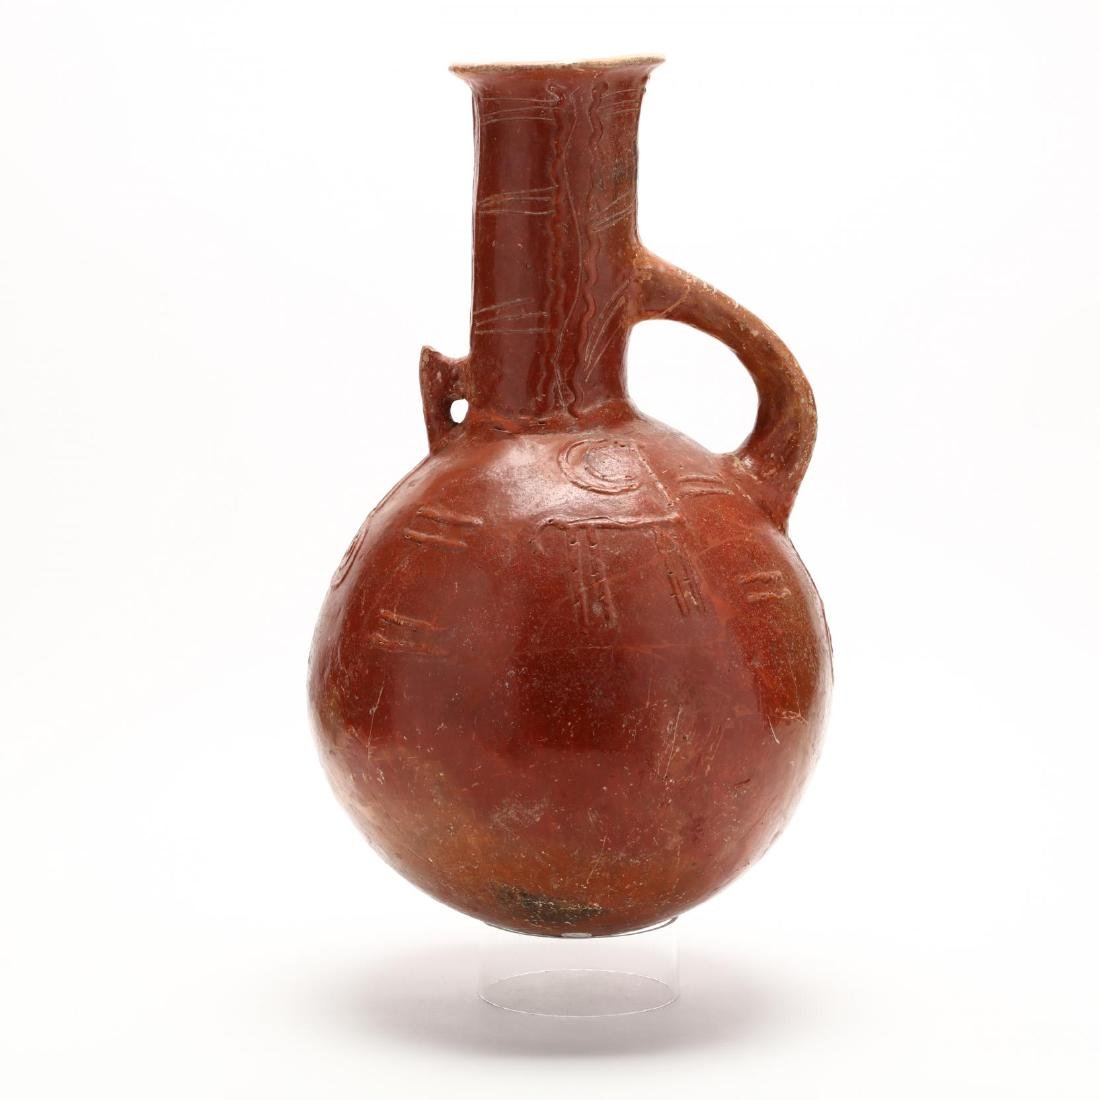 Cypriot Early Bronze Age Polished Red Ware Pitcher - 3